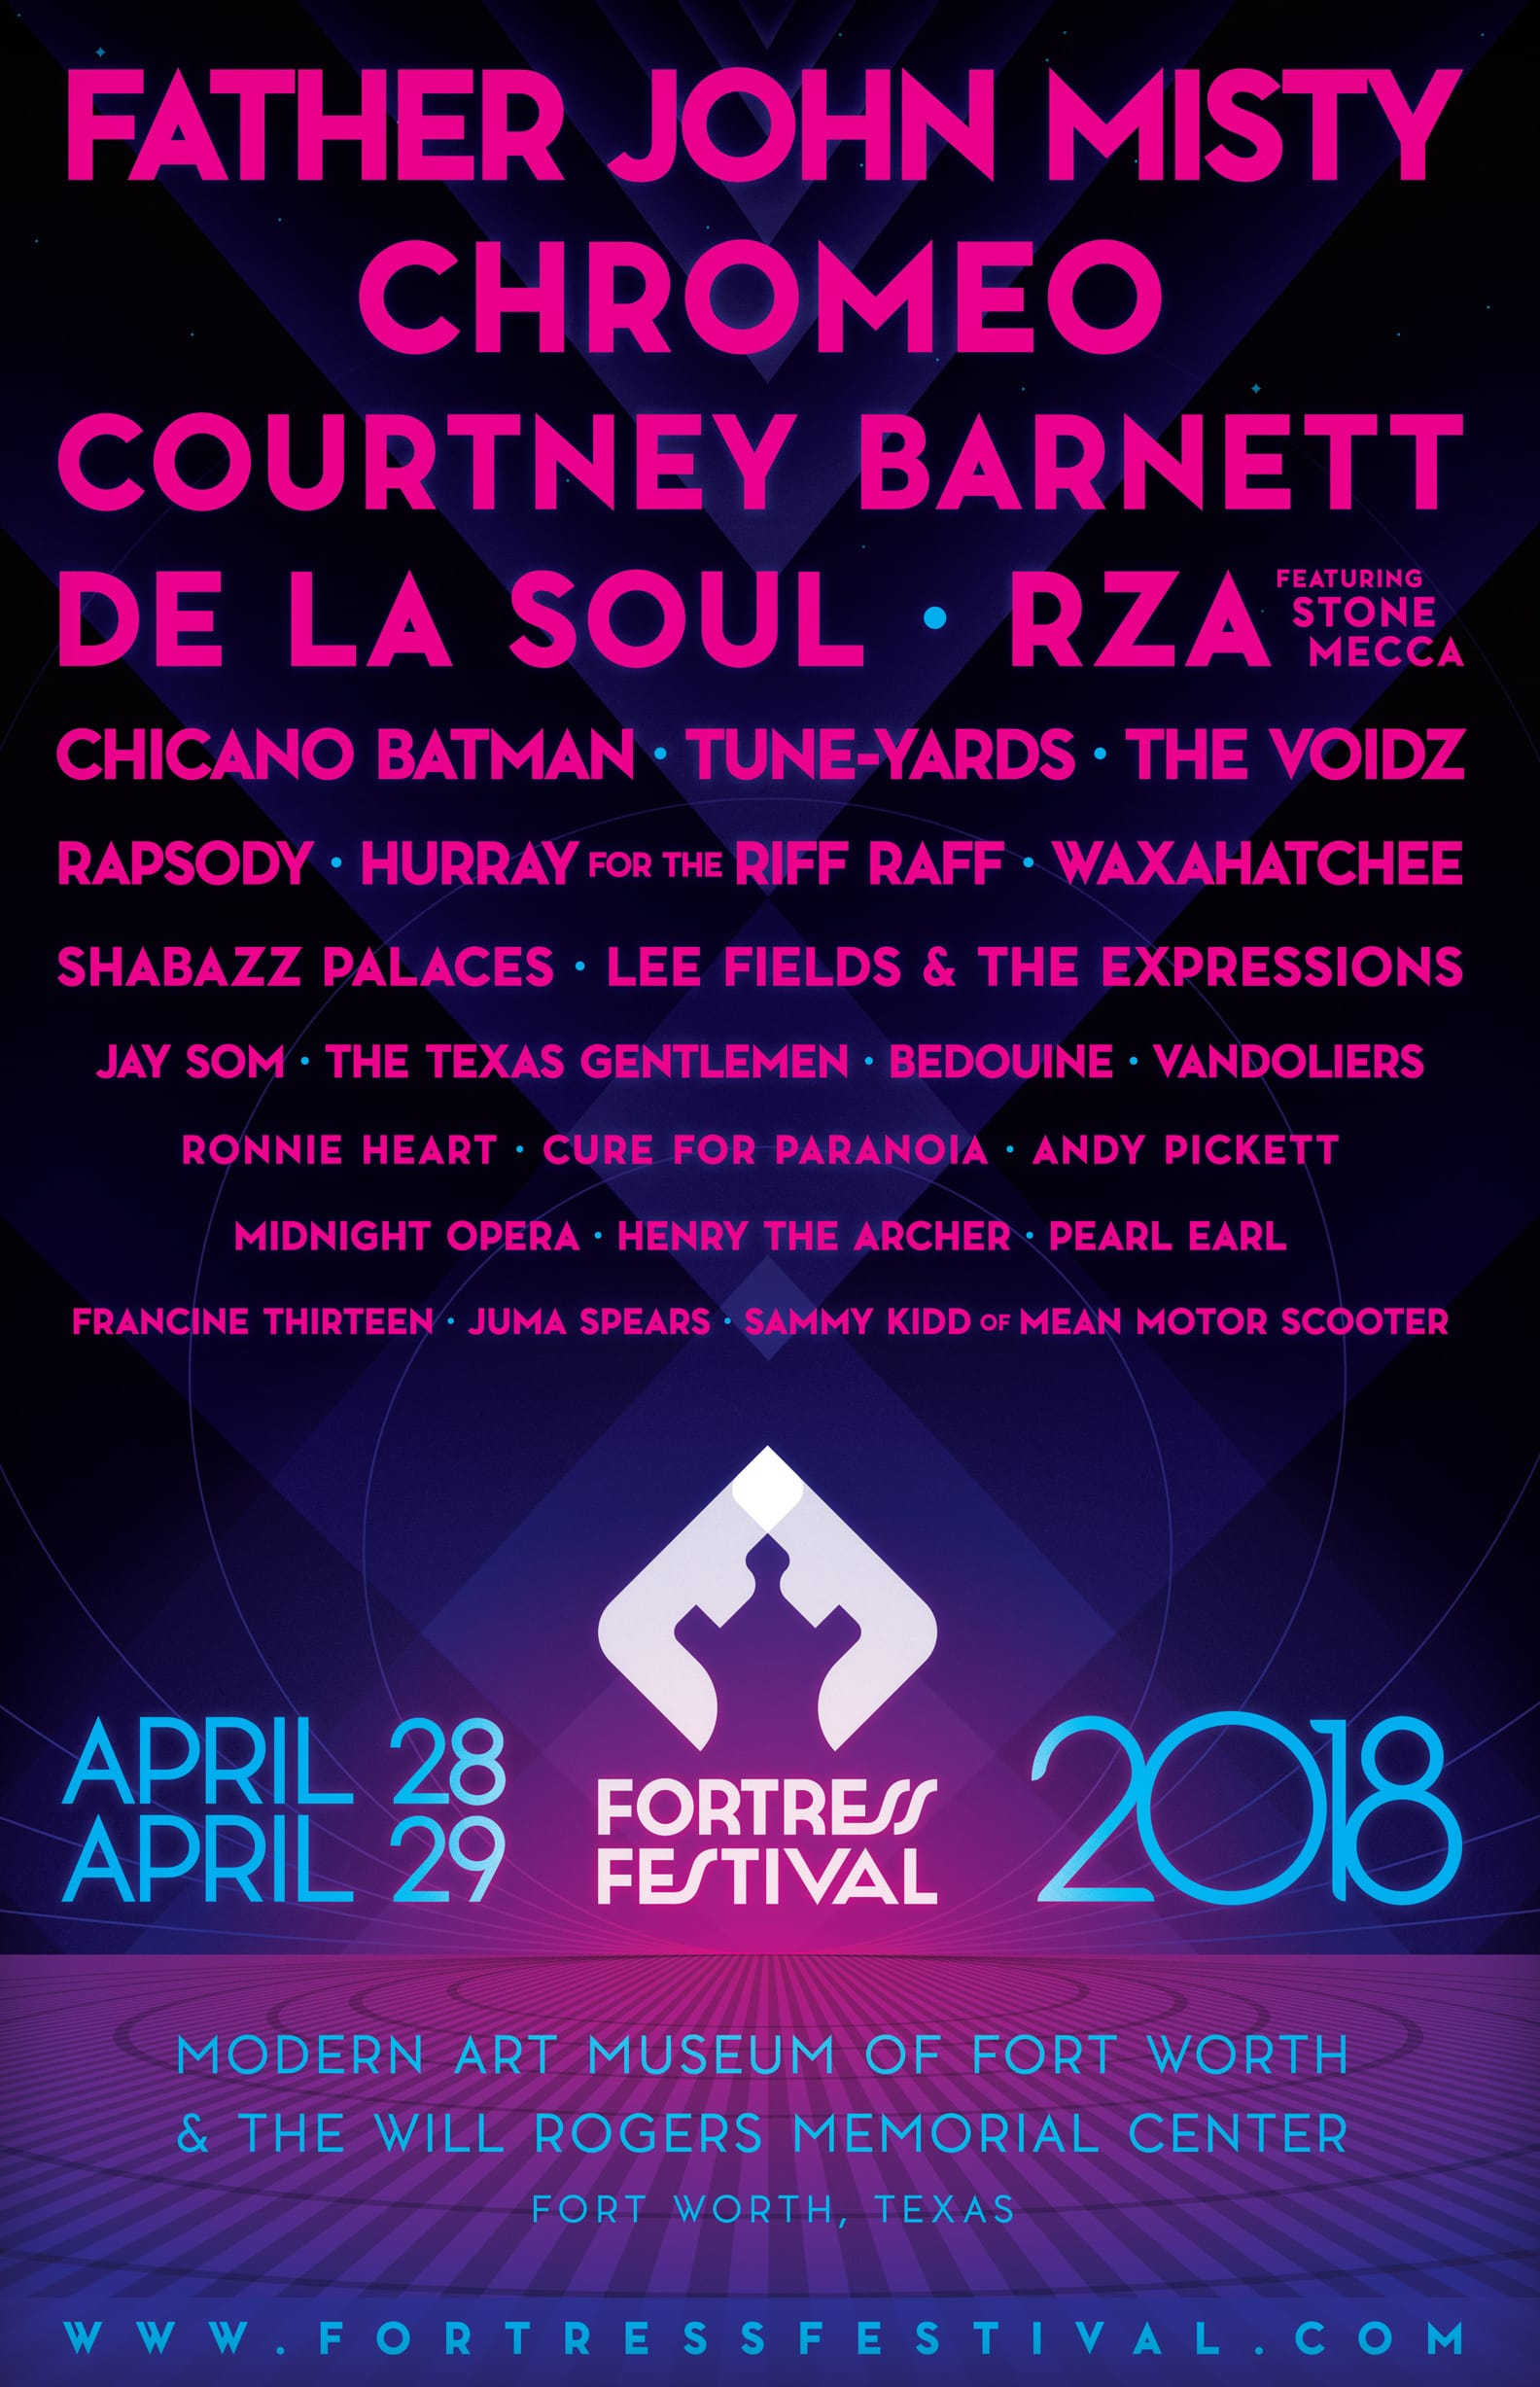 Lineup Poster for Fortress Festival 2018